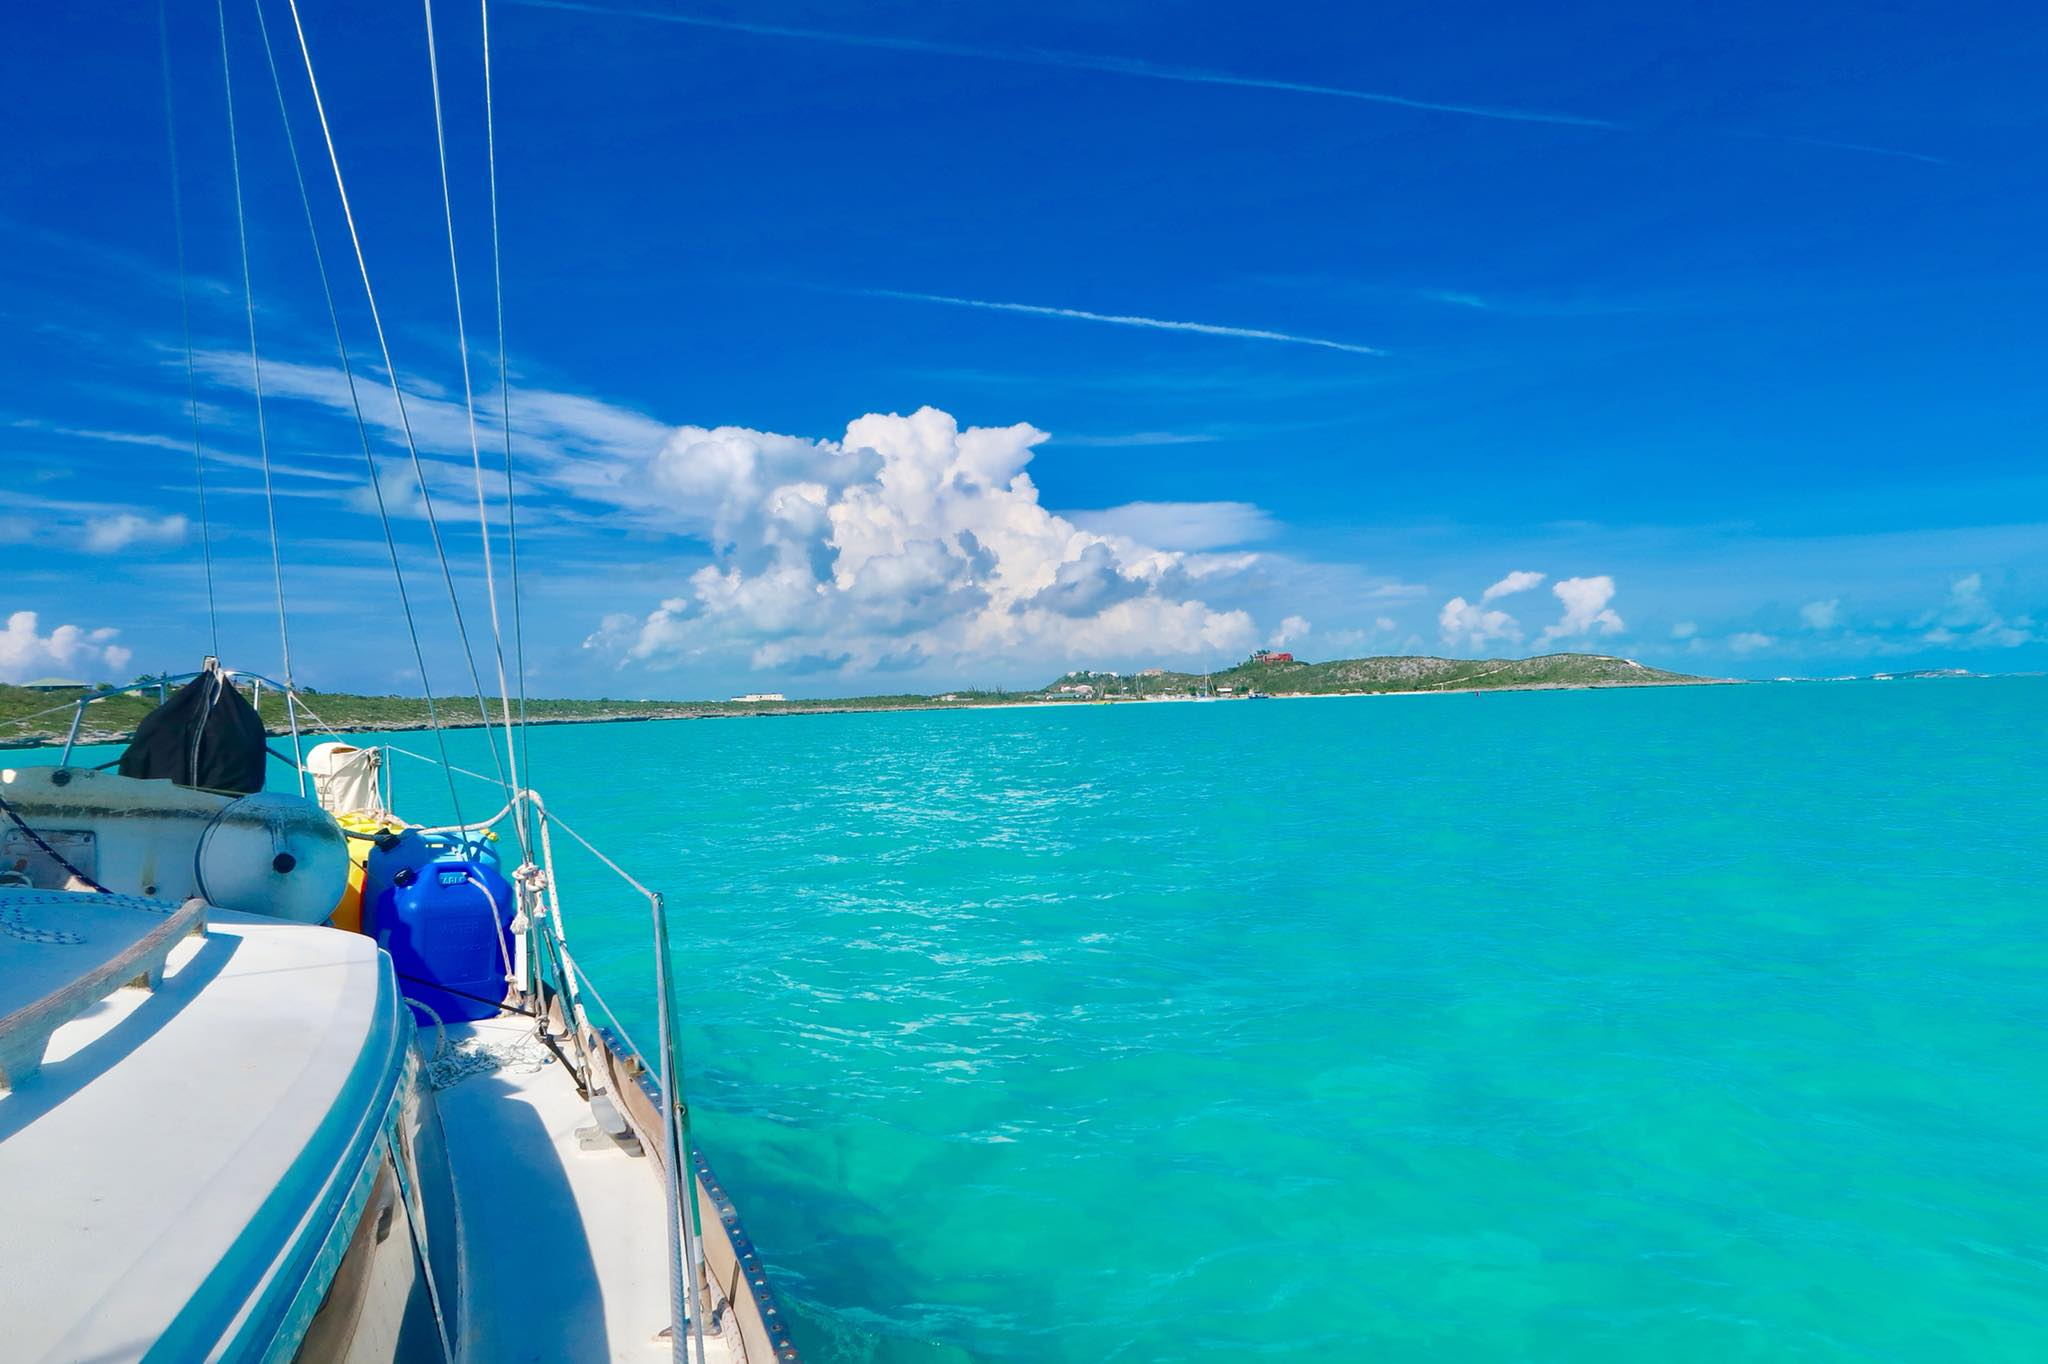 Sailing Life Day 43:  Detour! Emergency on Board while on Passage to Luperon! We sailed back up to Provo, Turks & Caicos